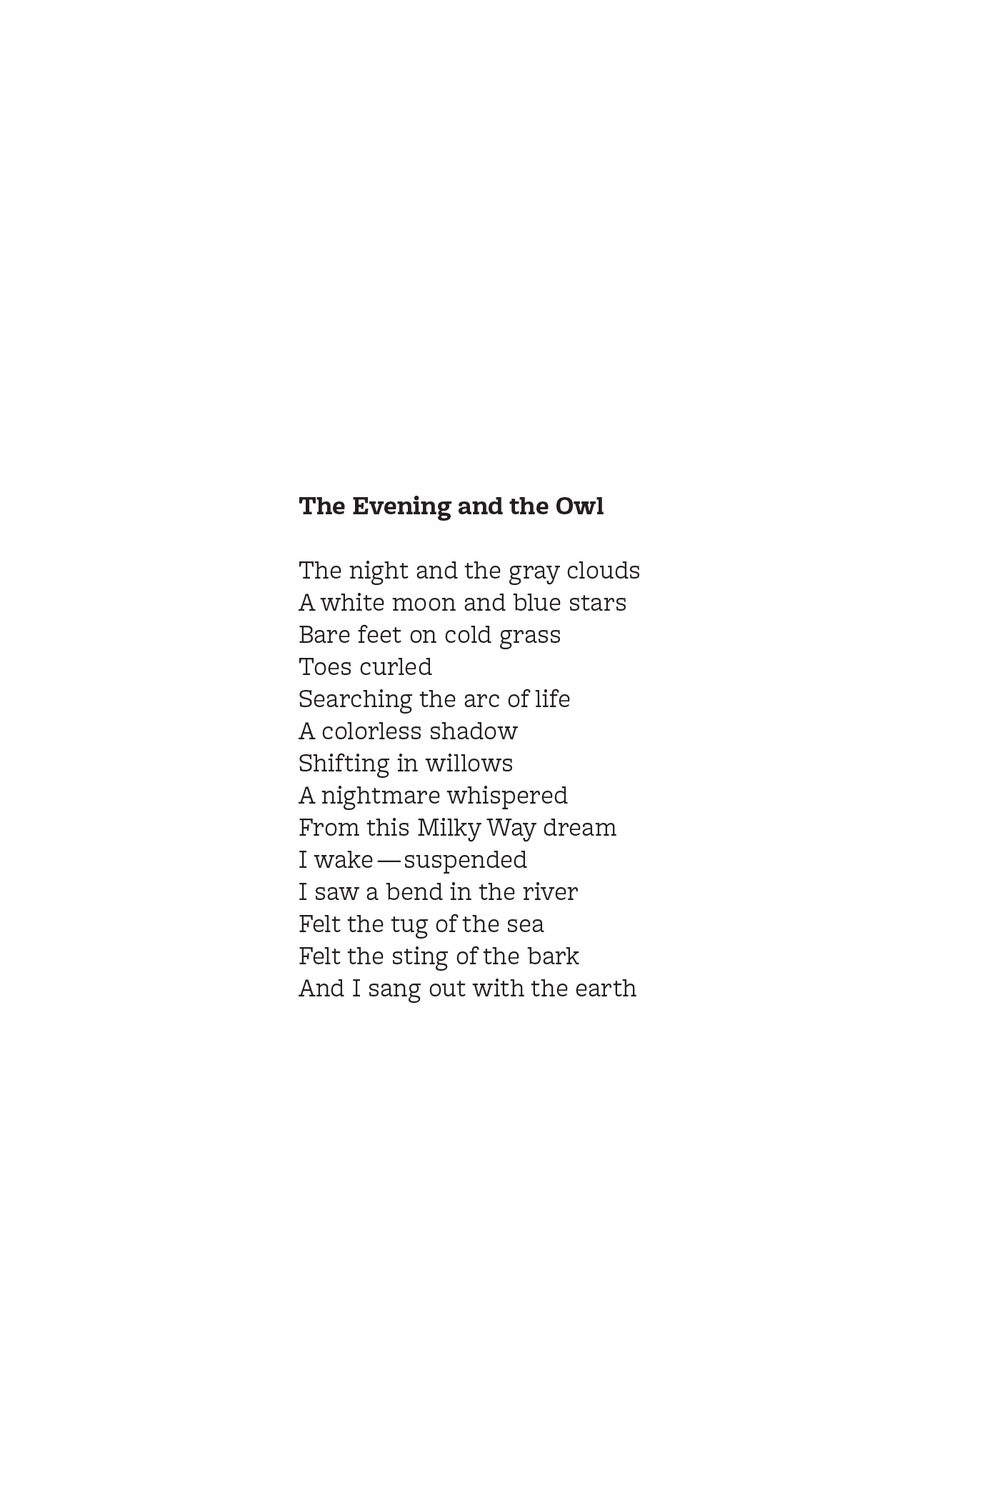 jkdc_eveningowl-pages-evening.png